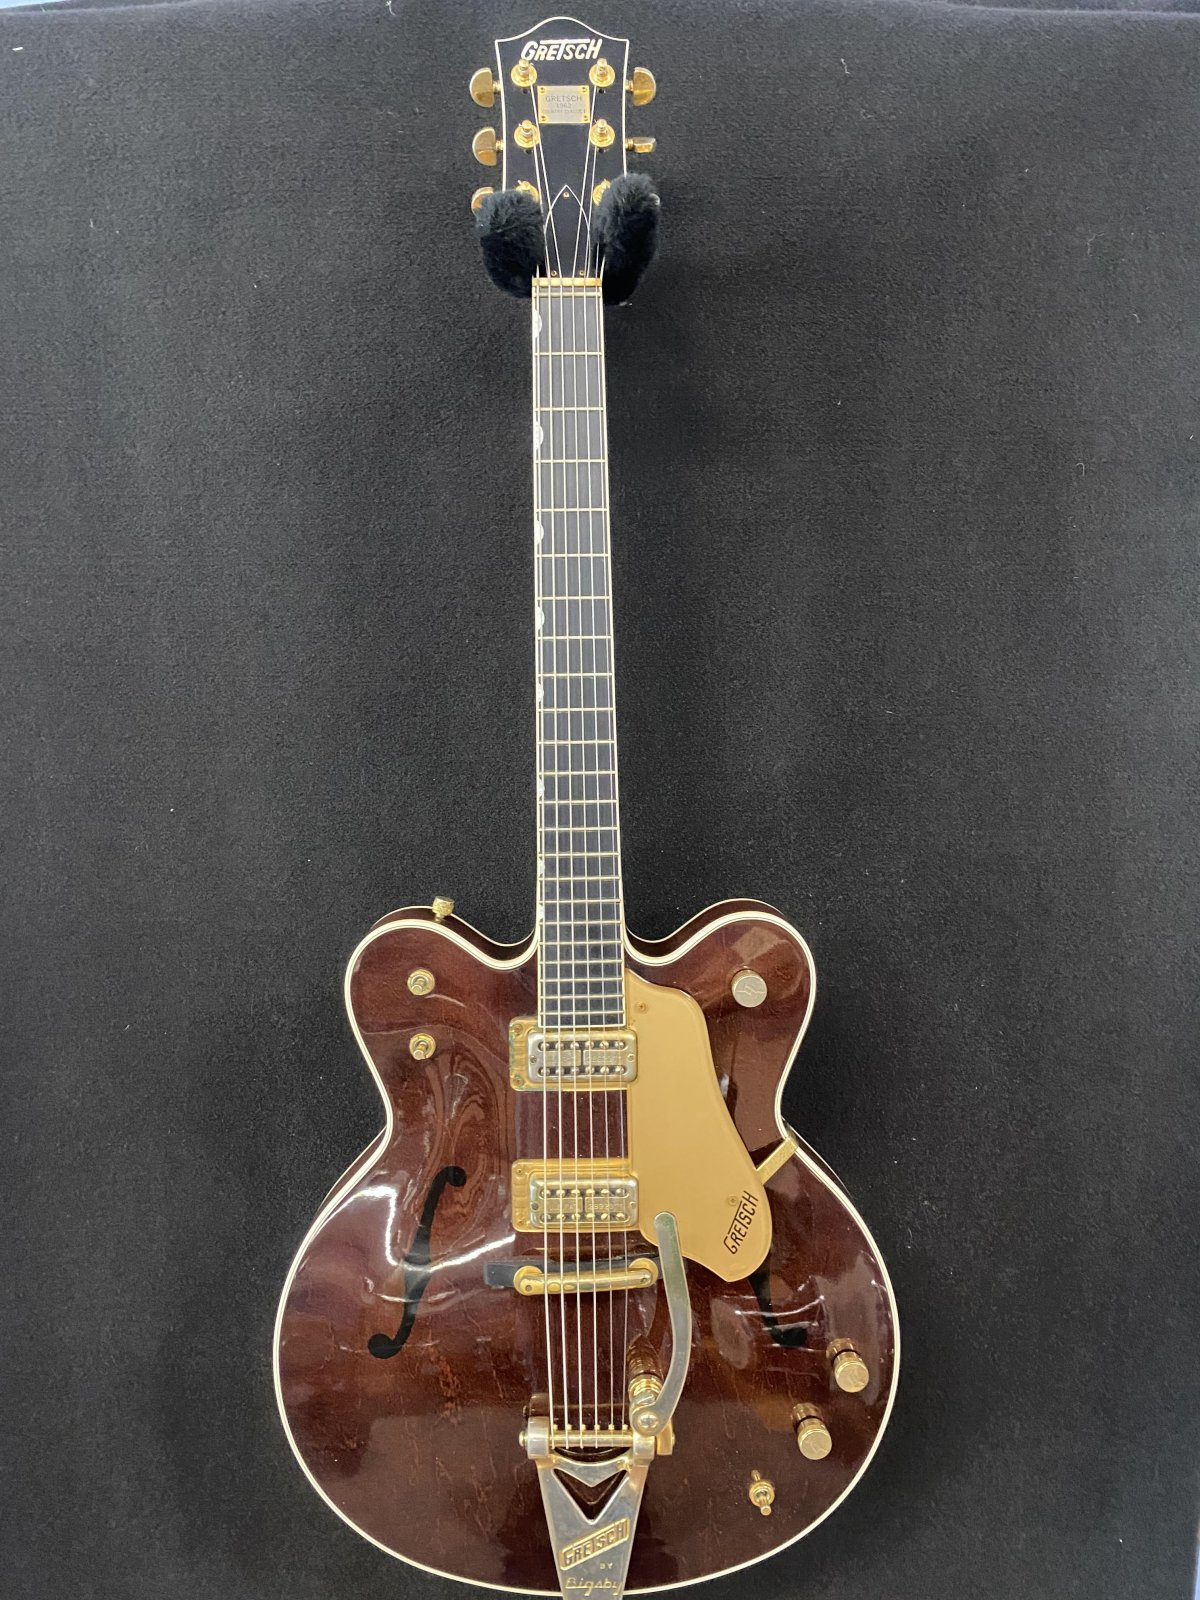 Used Gretsch Country Classic II